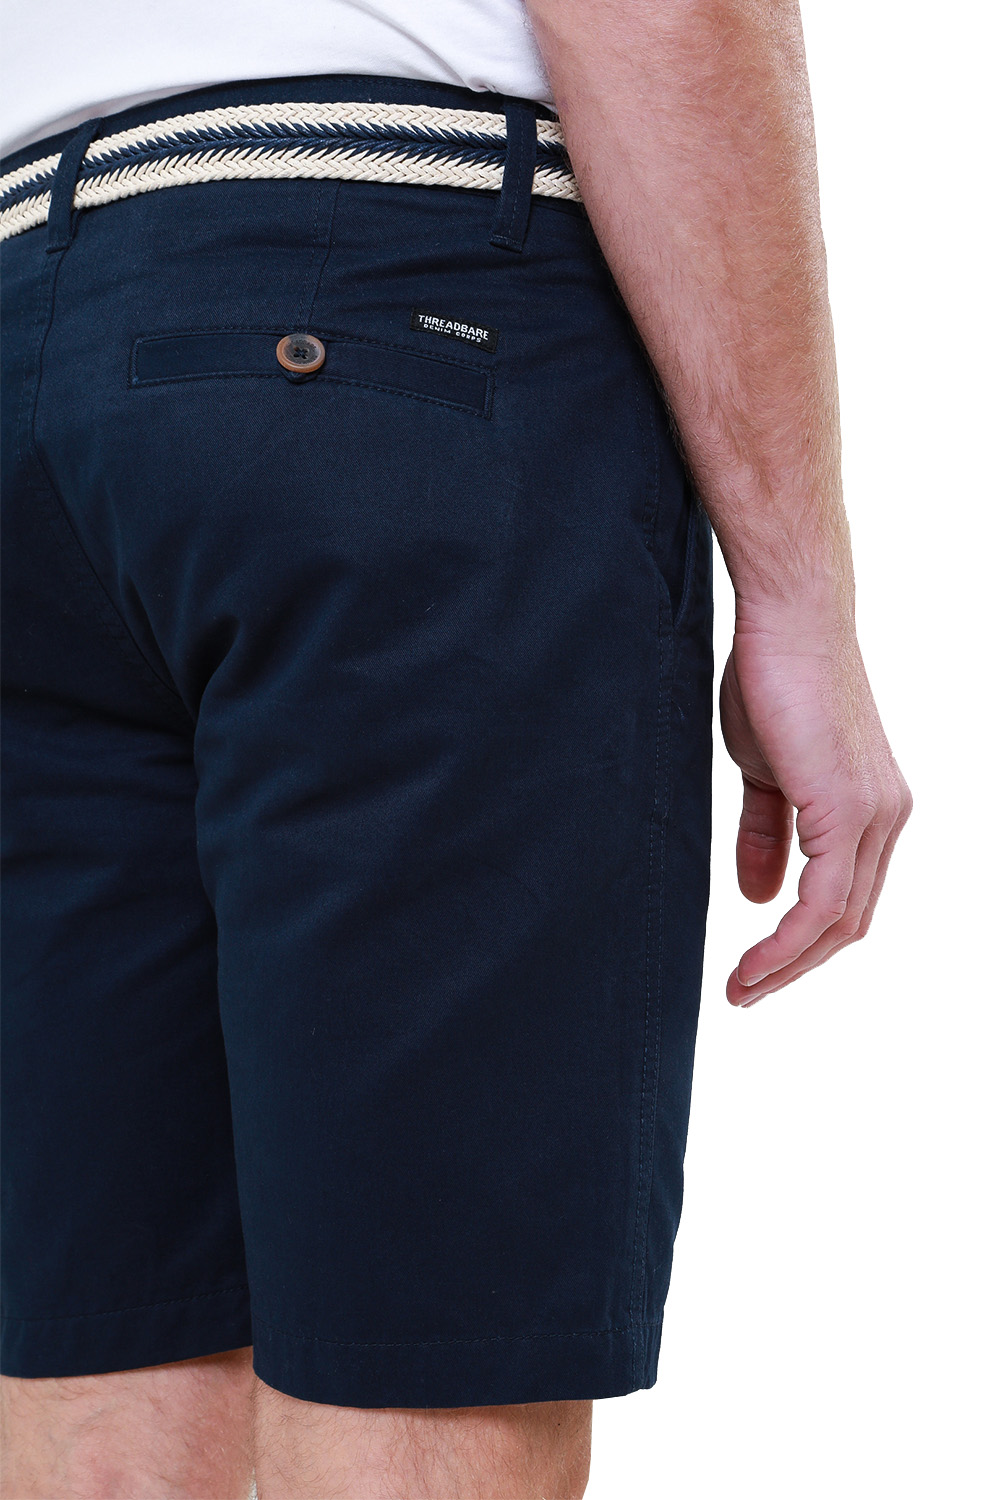 Threadbare-Mens-Slim-Fit-Belted-Chino-Shorts-Summer-Casual-Cotton-Smart-Bottoms thumbnail 22